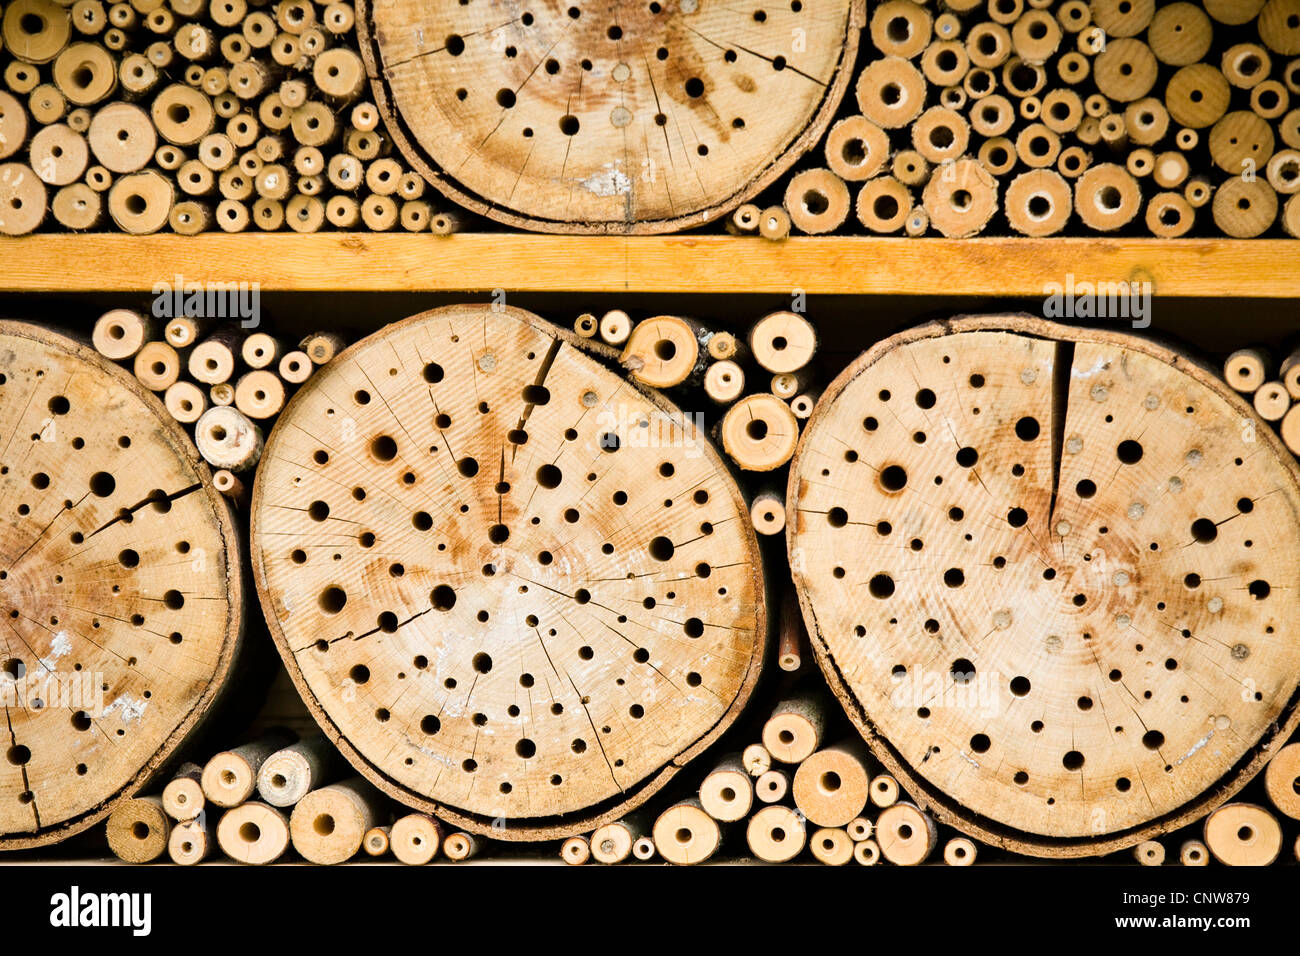 nesting aid for wild bees, Germany, Baden-Wuerttemberg, Bad Rappenau - Stock Image